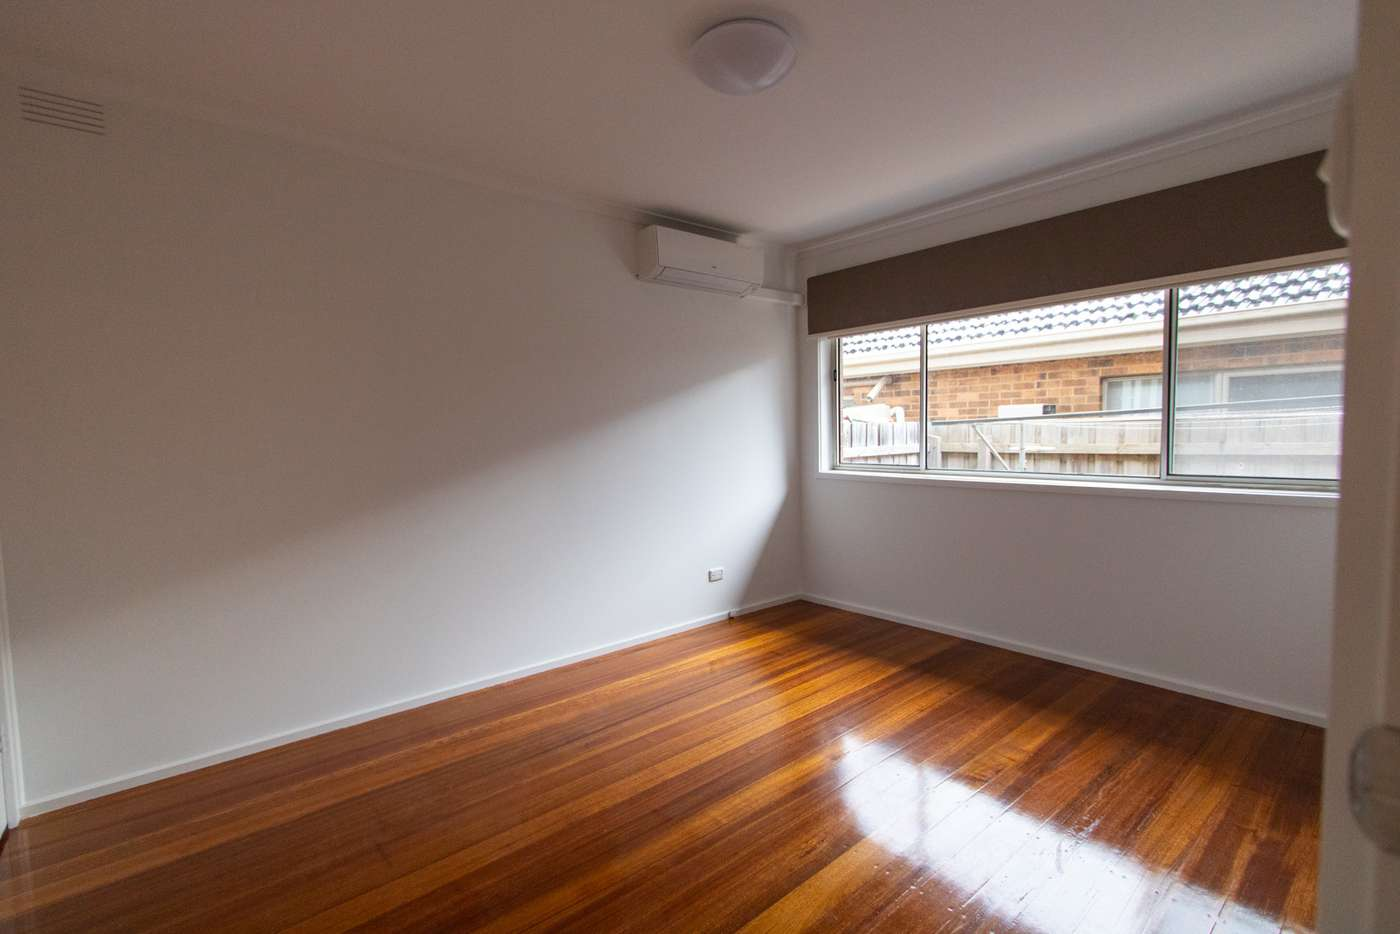 Sixth view of Homely unit listing, 3/9 William Street, Mount Waverley VIC 3149